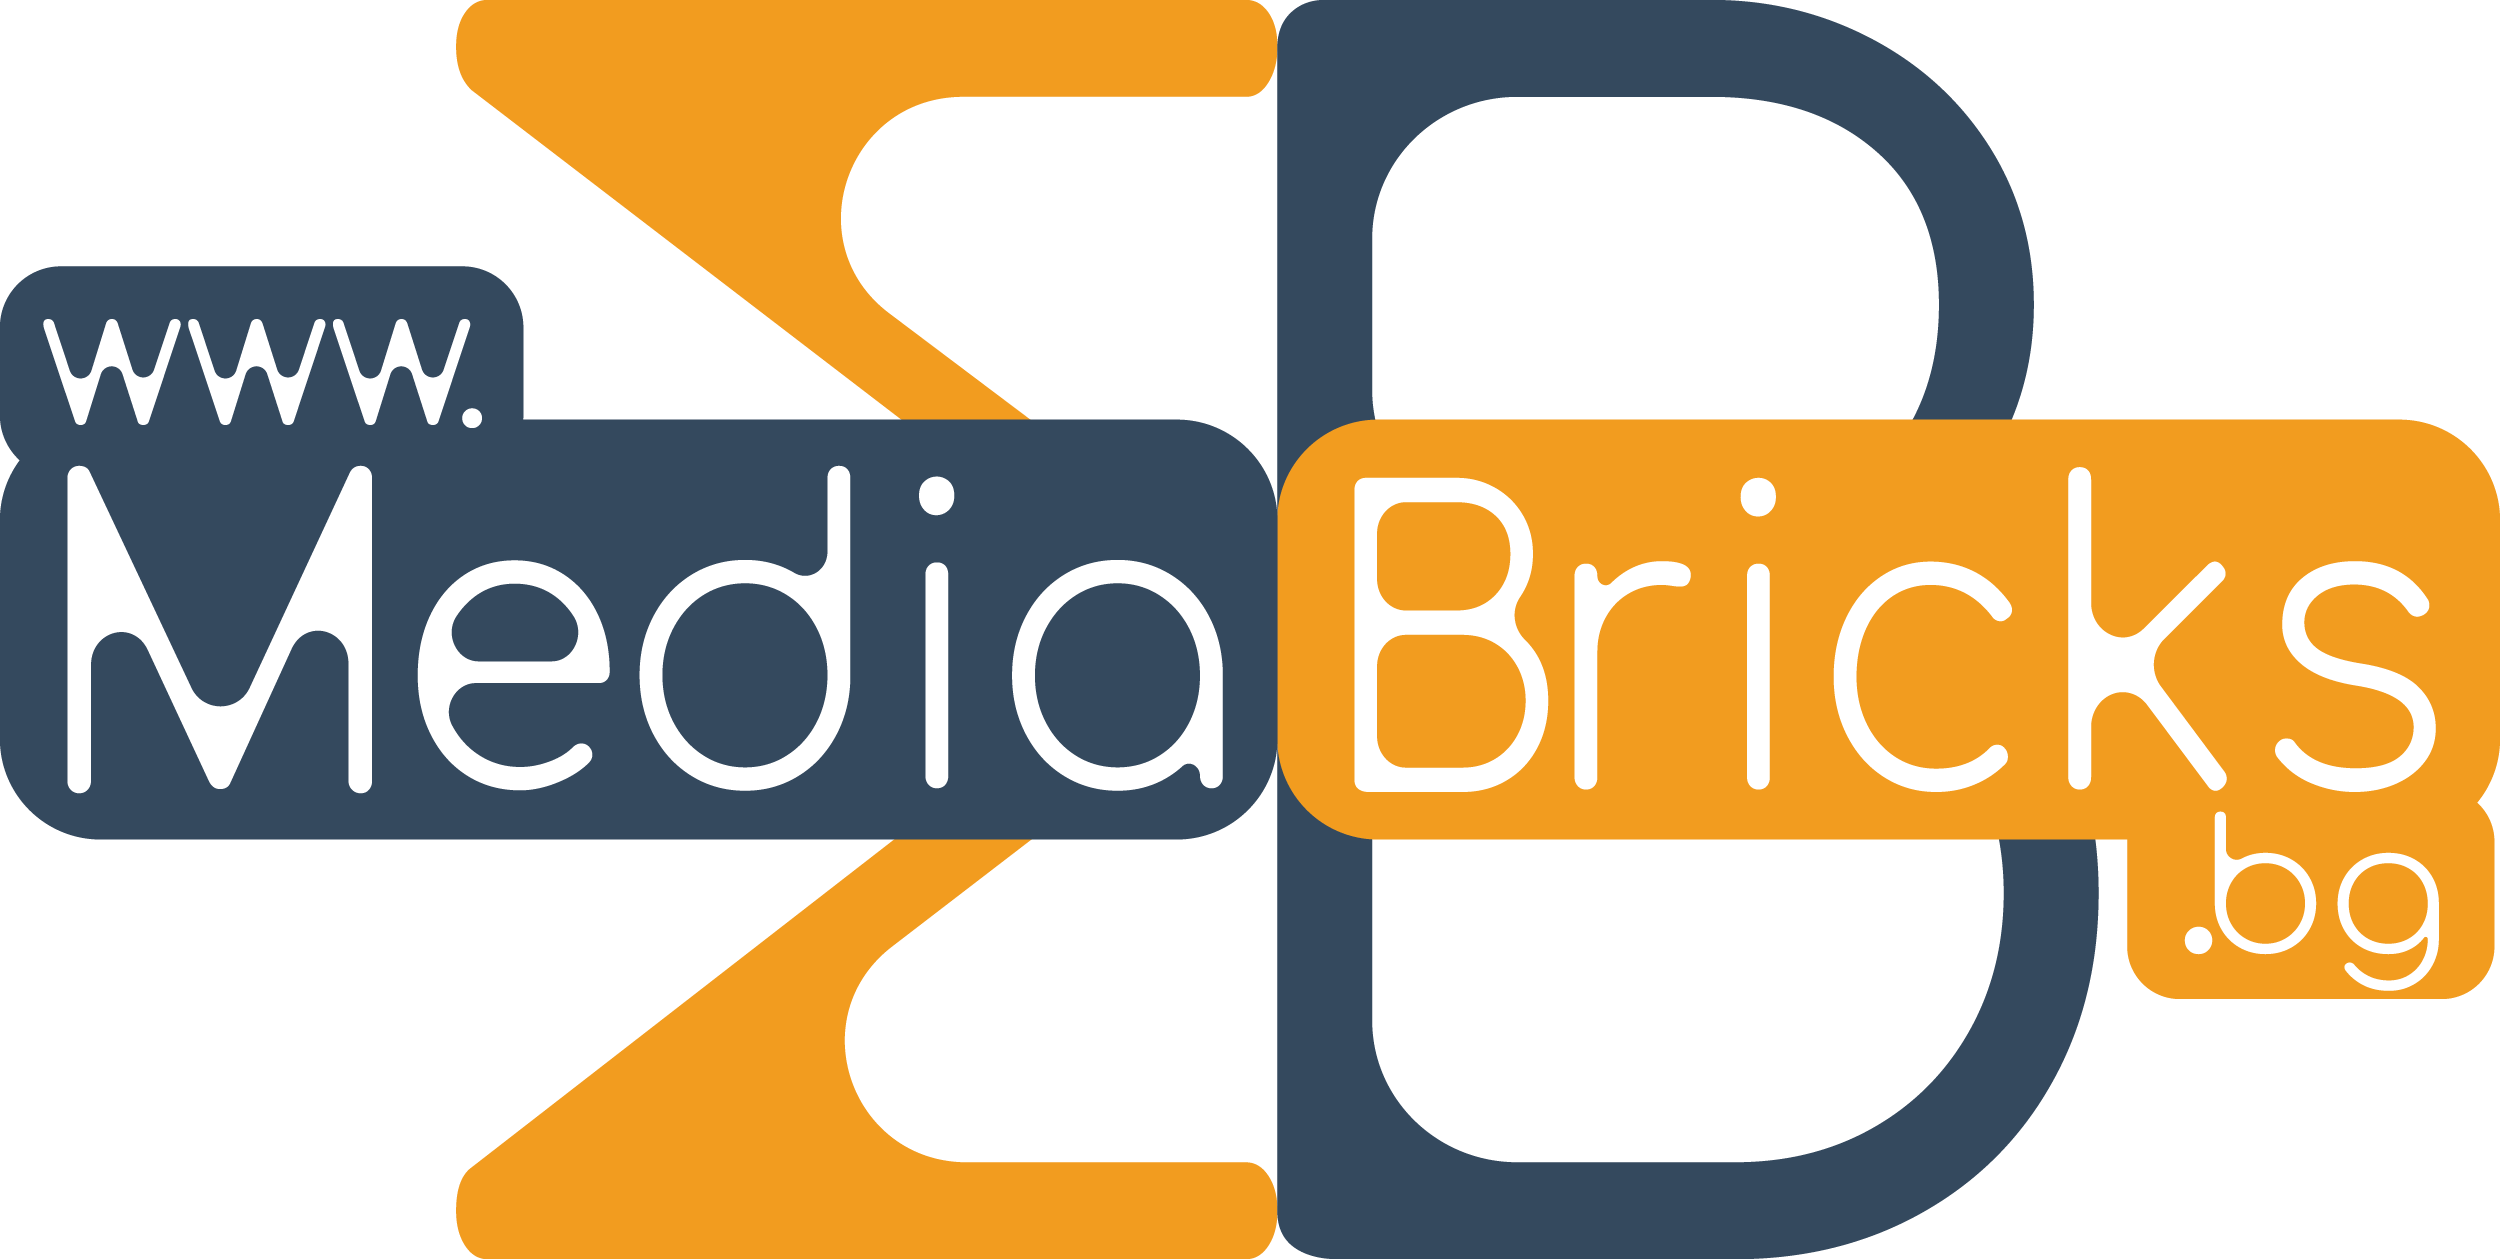 Media Bricks logo